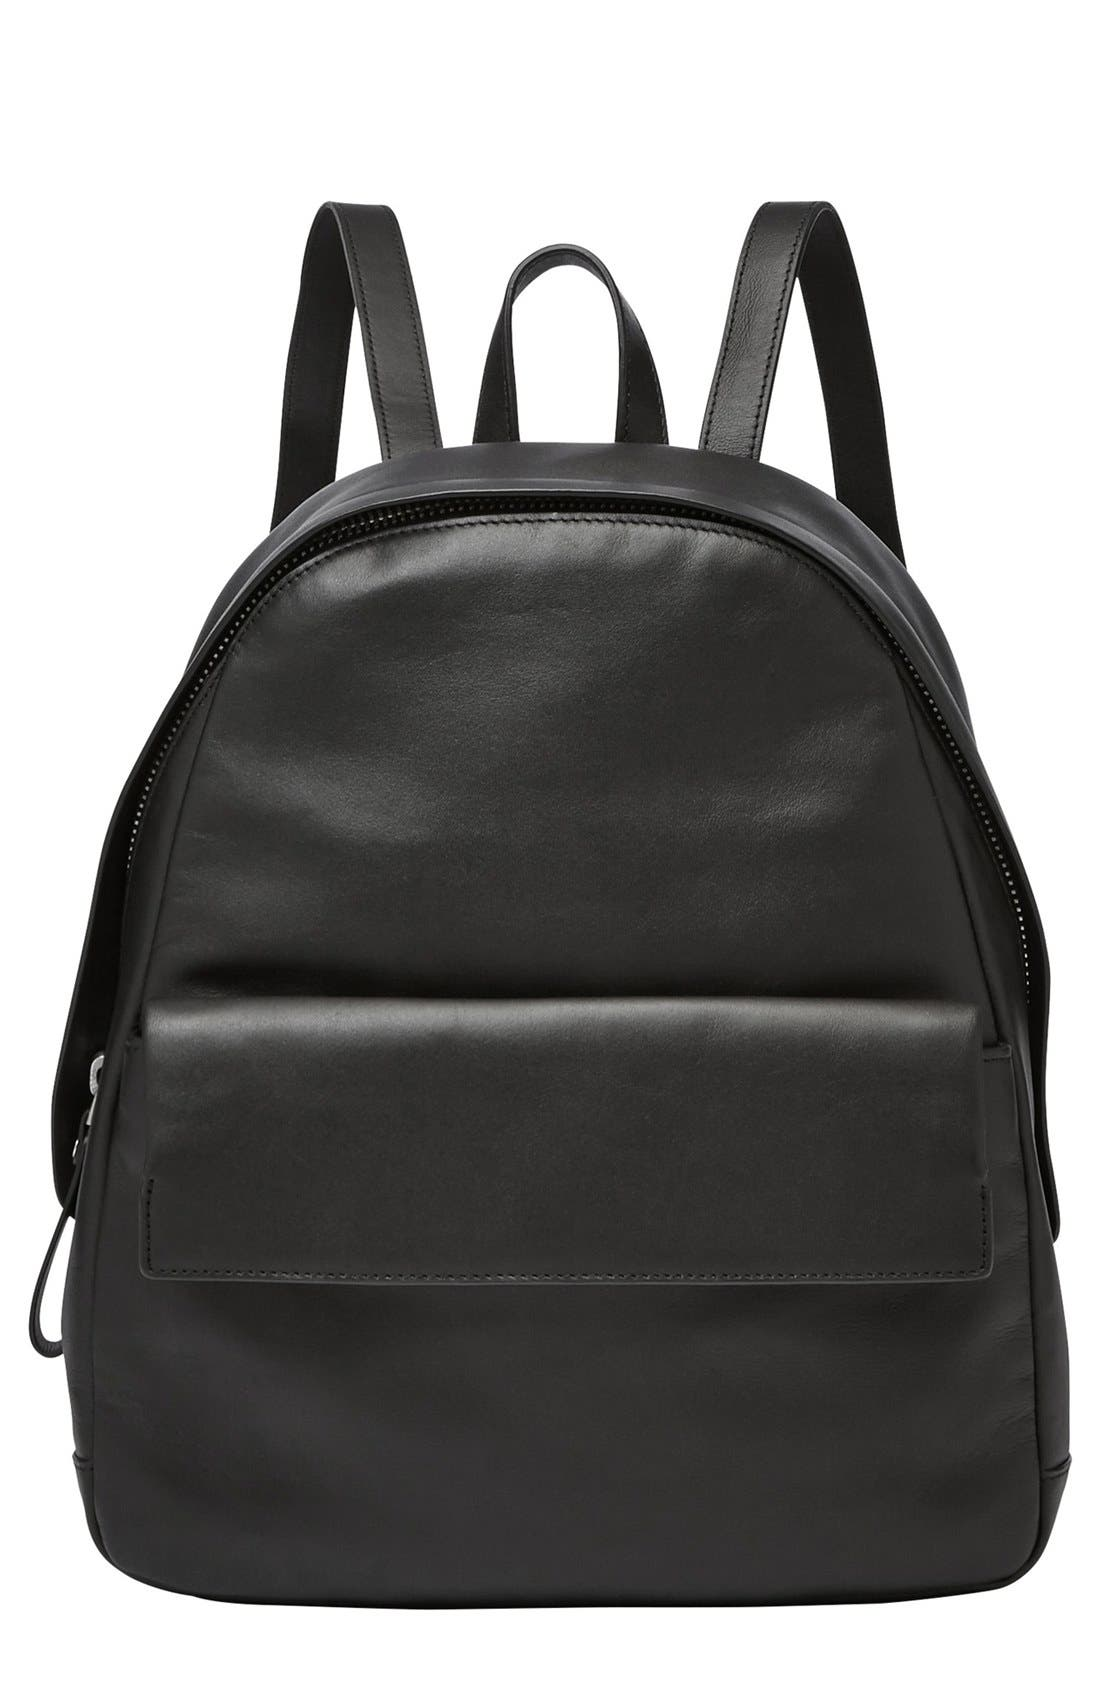 'Aften' Leather Backpack, Main, color, 001